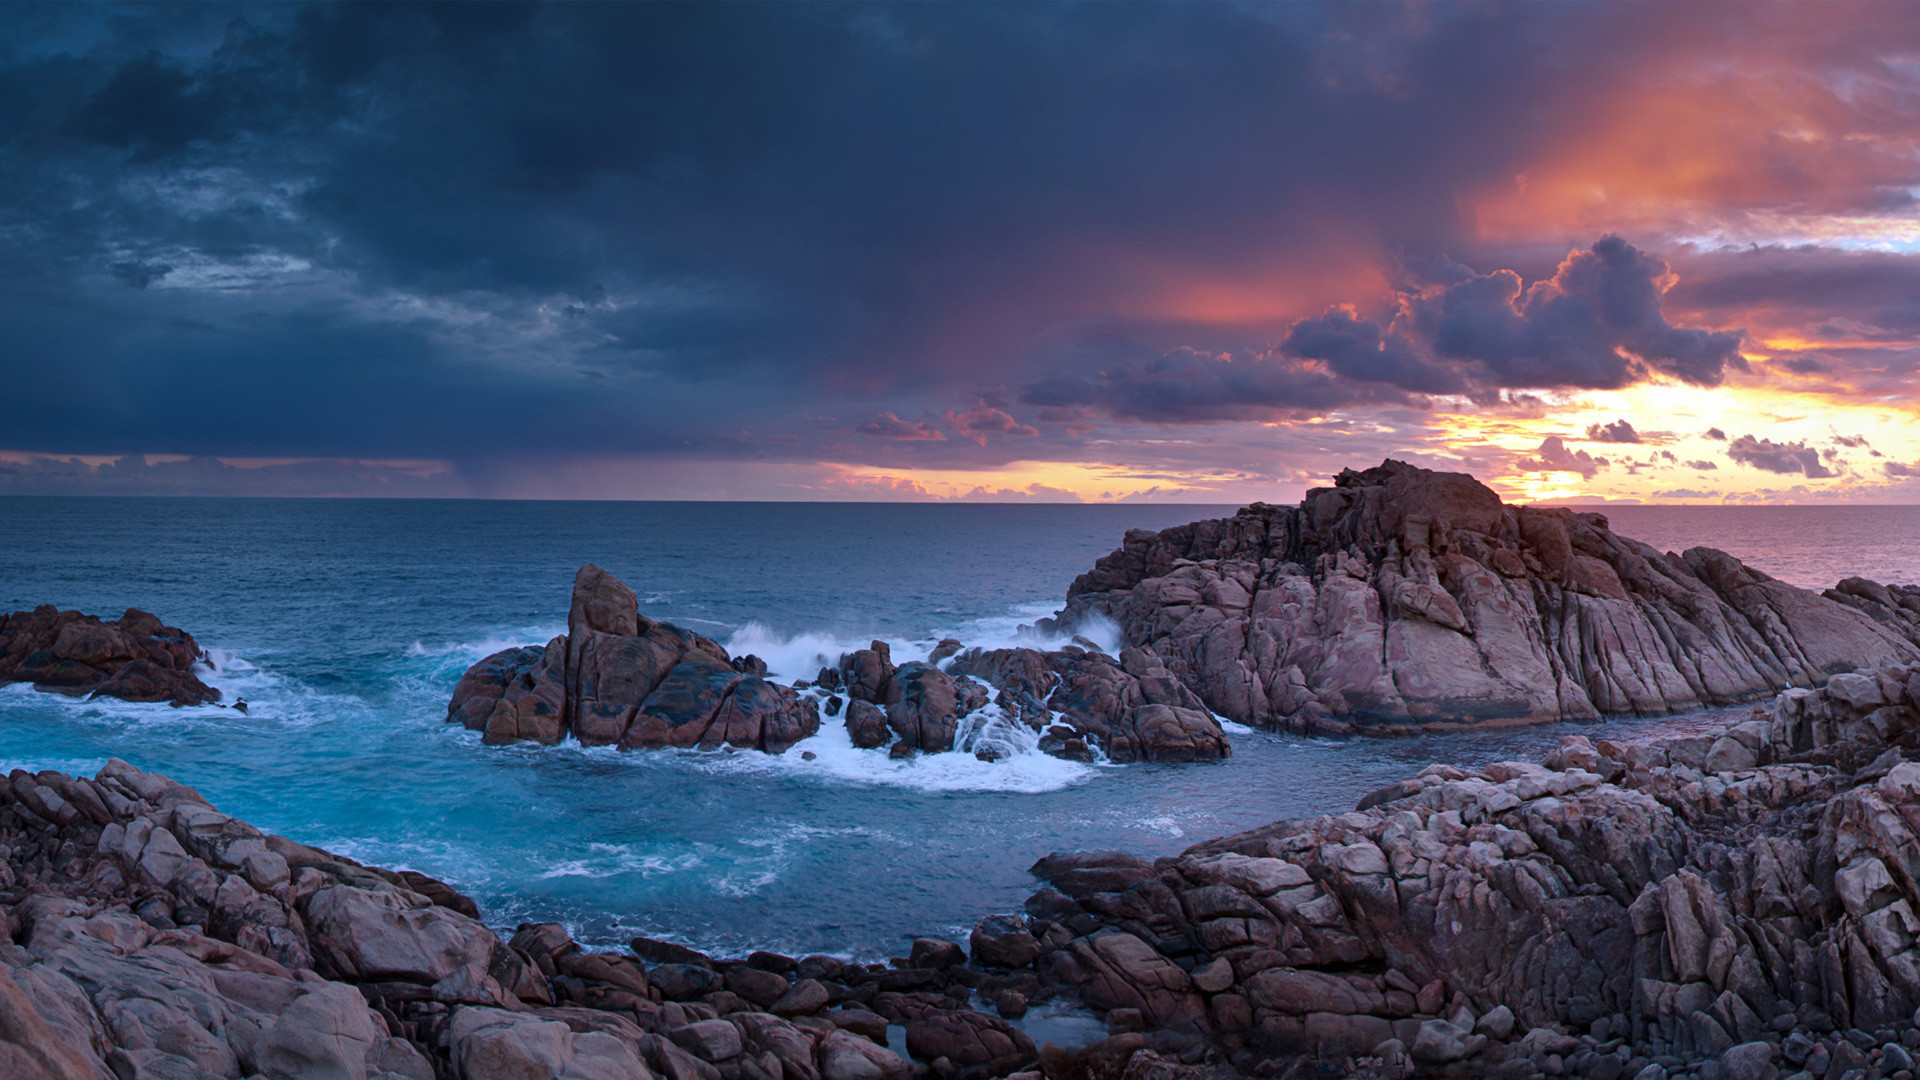 Res: 1920x1080, Sunset Time Canal Rocks Western Australia Wallpaper